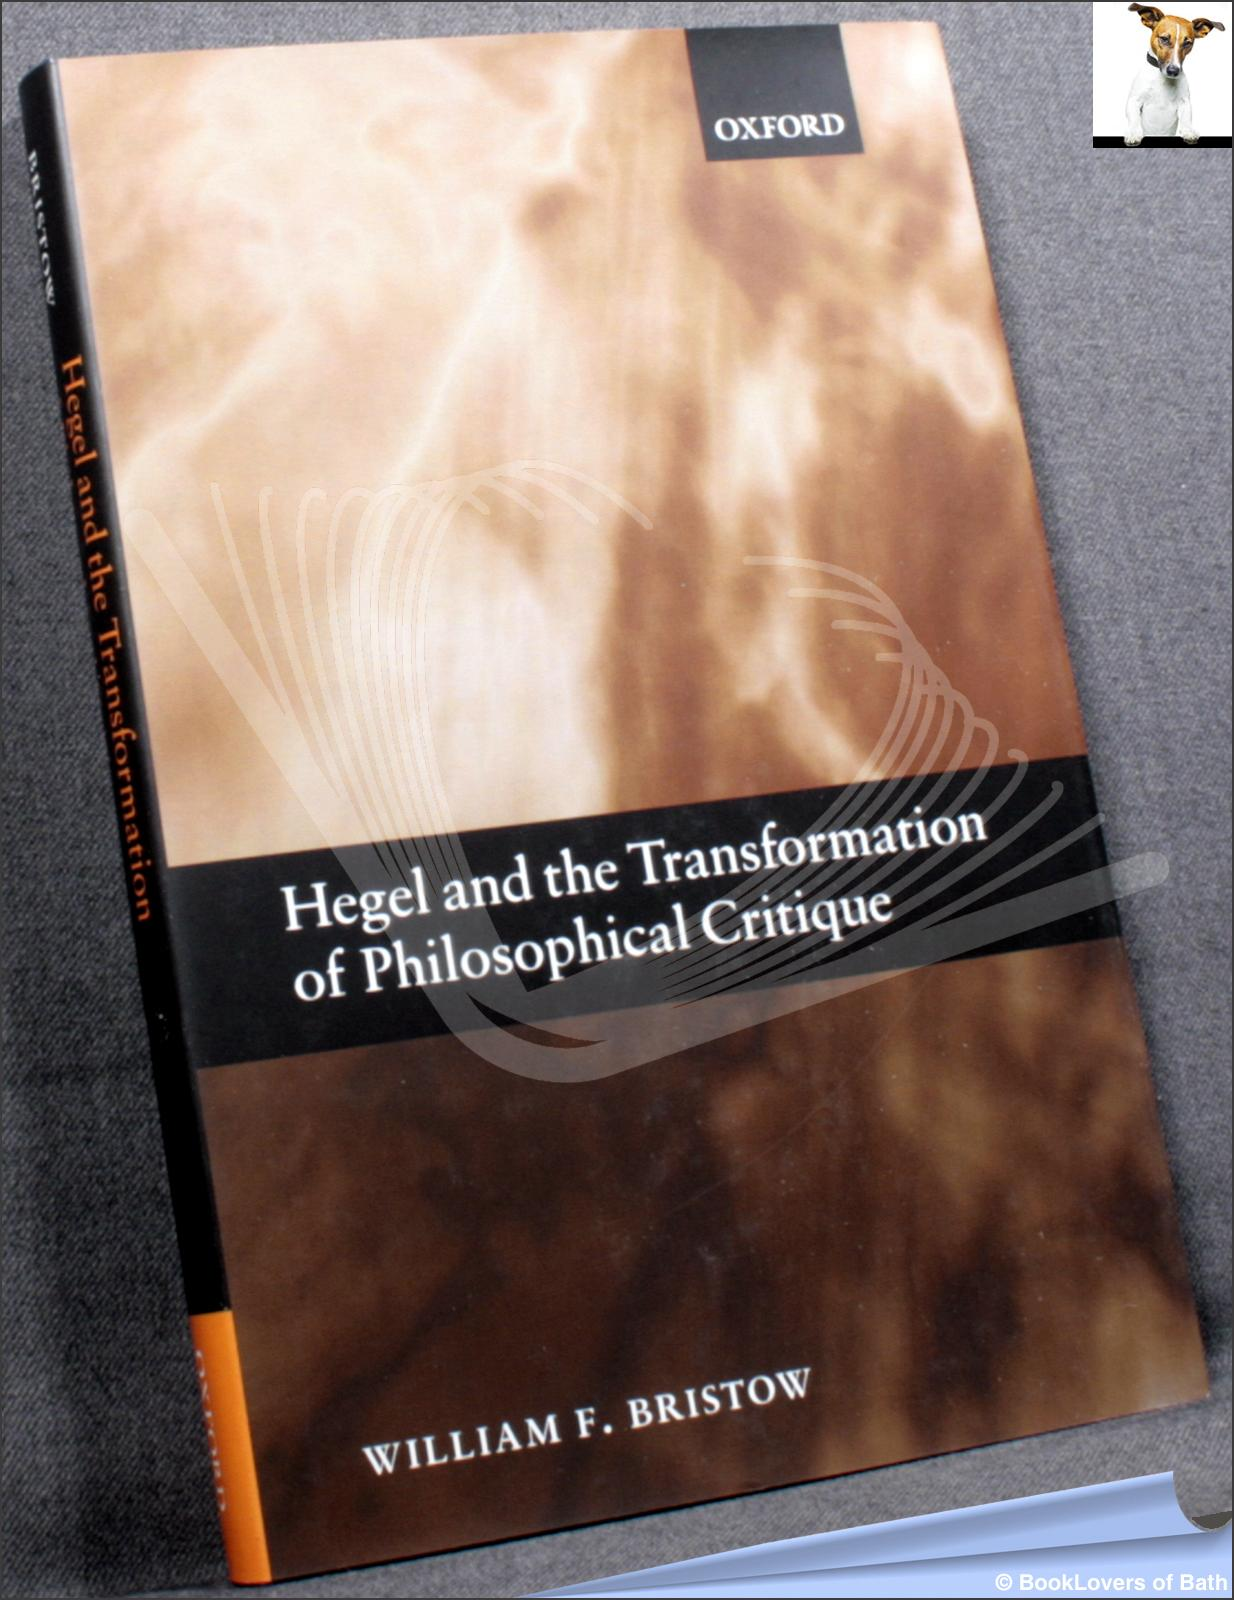 Hegel and the Transformation of Philosophical Critique - William F. Bristow